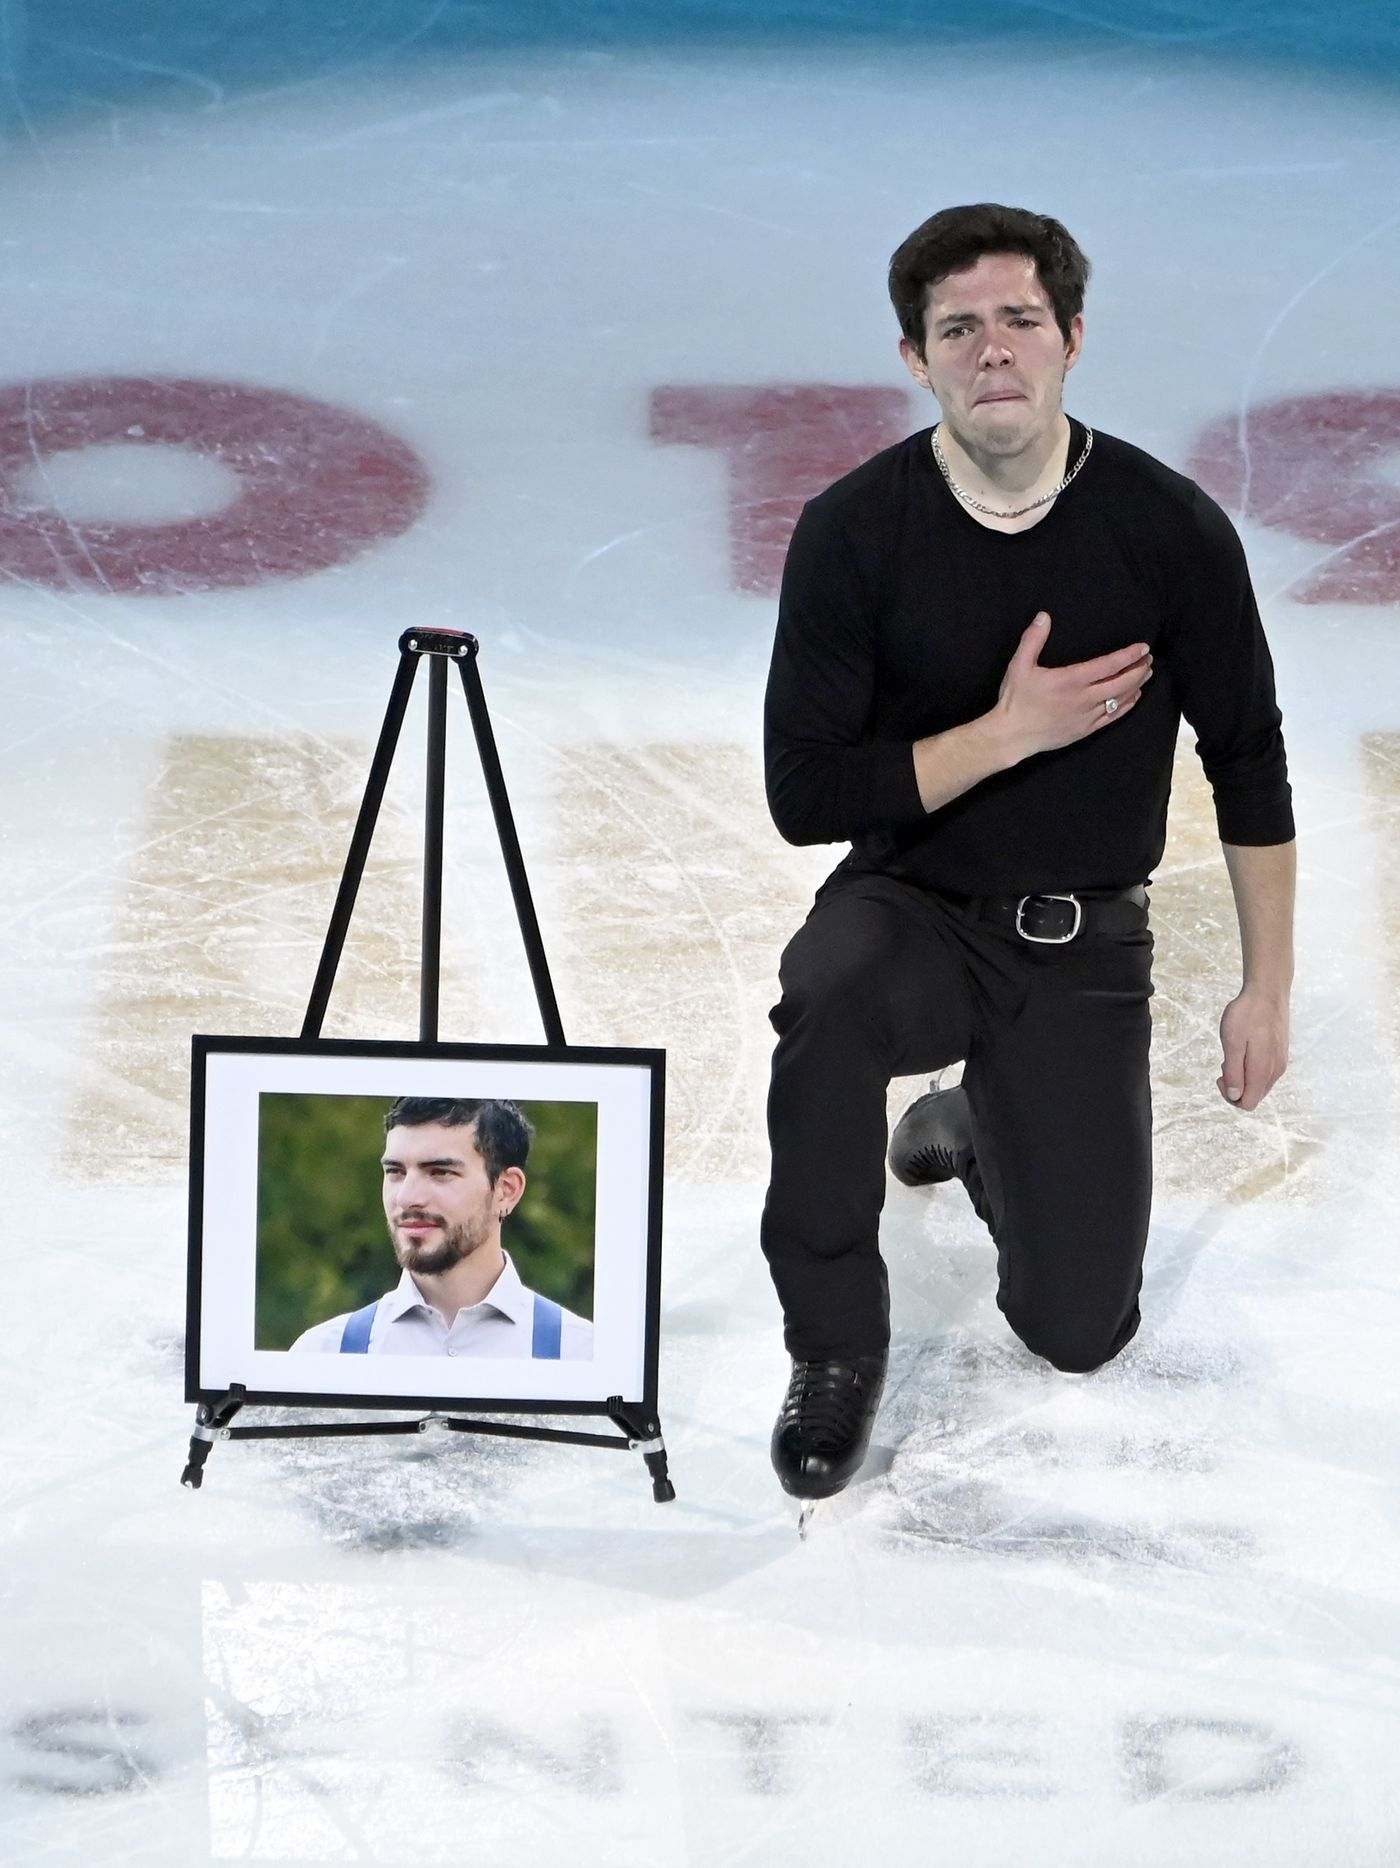 Keegan Messing, right, of Canada, performs for his late brother Paxon during the International Skating Union Grand Prix of Figure Skating Series exhibition Sunday, Oct. 20, 2019, in Las Vegas. (AP Photo/David Becker)